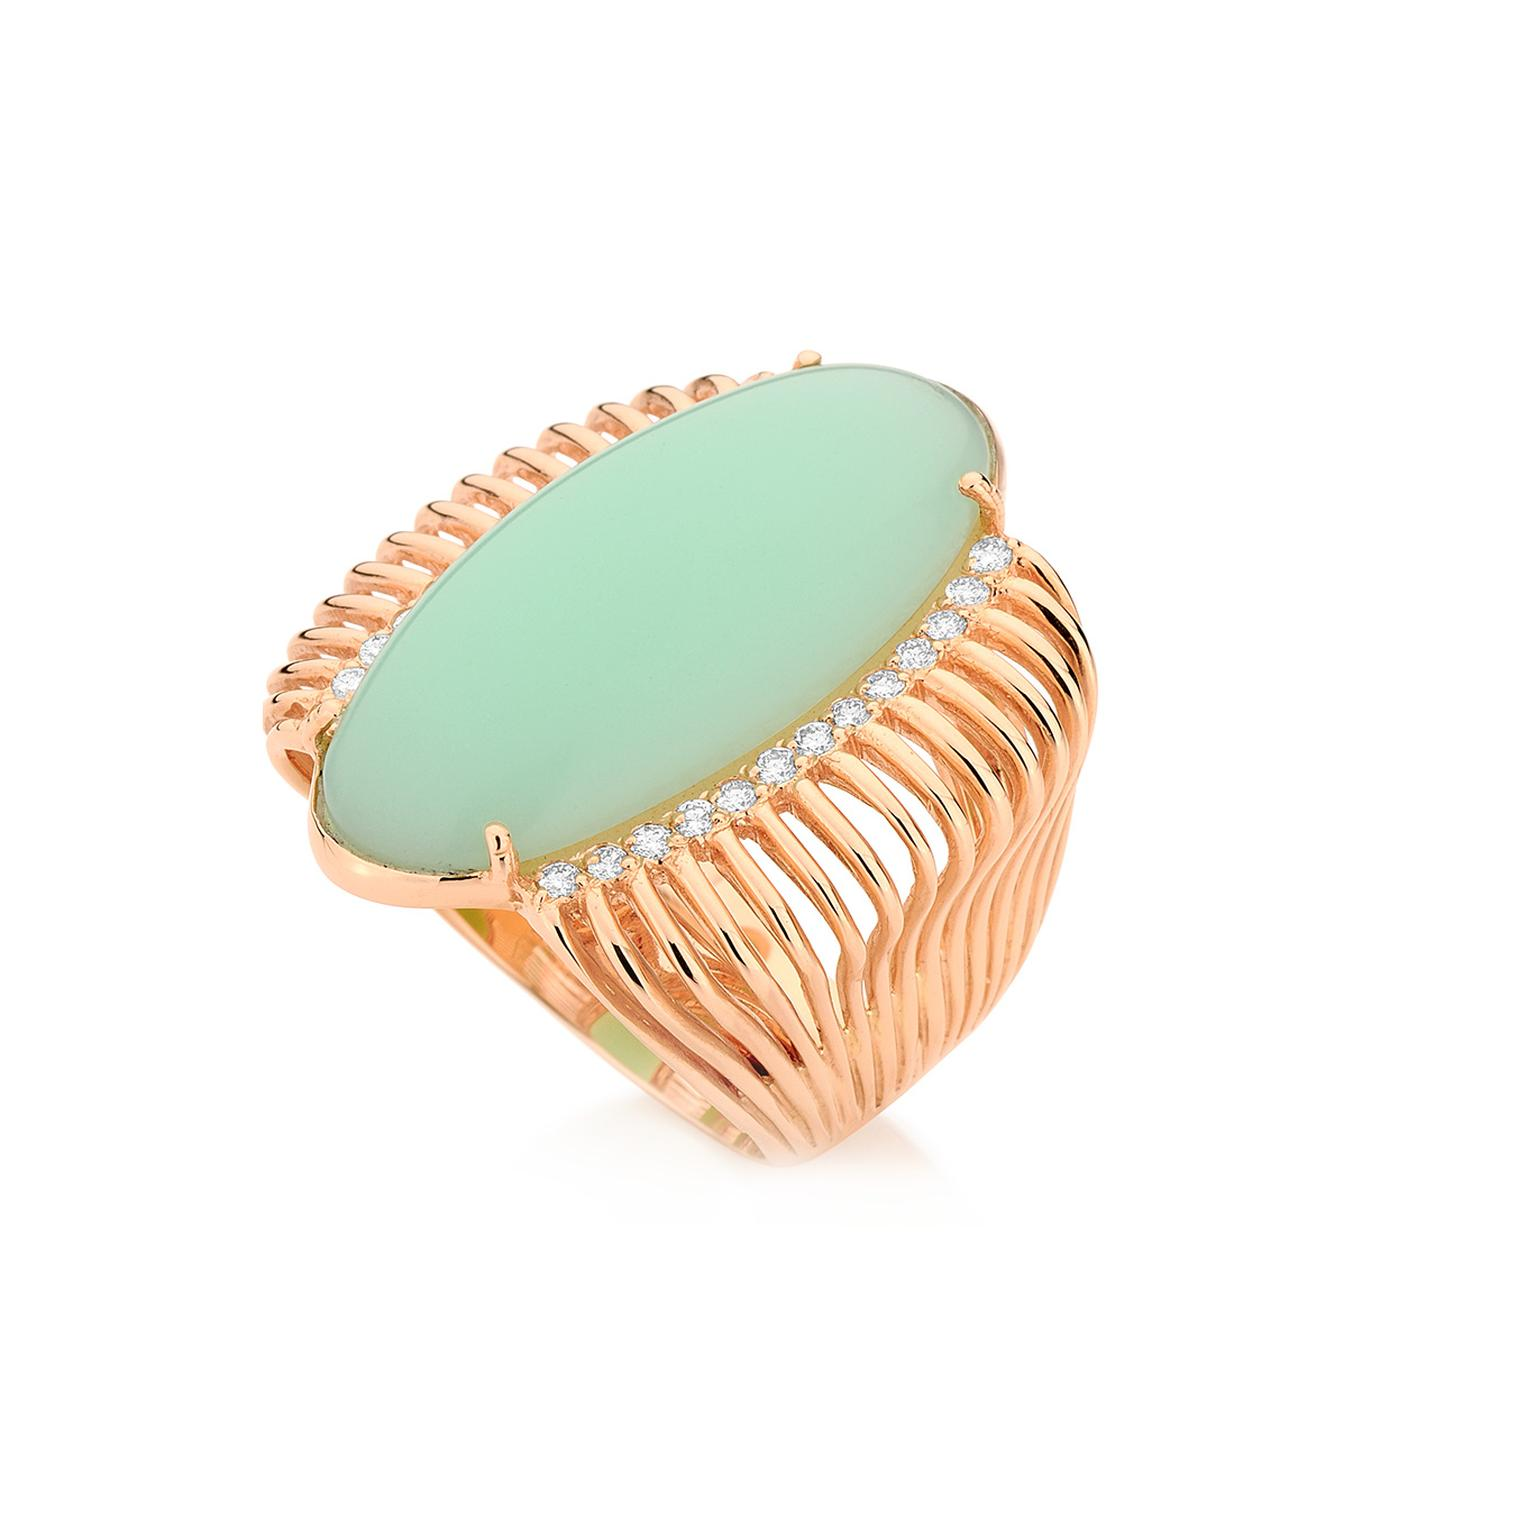 Carla Amorim Pistache Chrysoprase cocktail ring